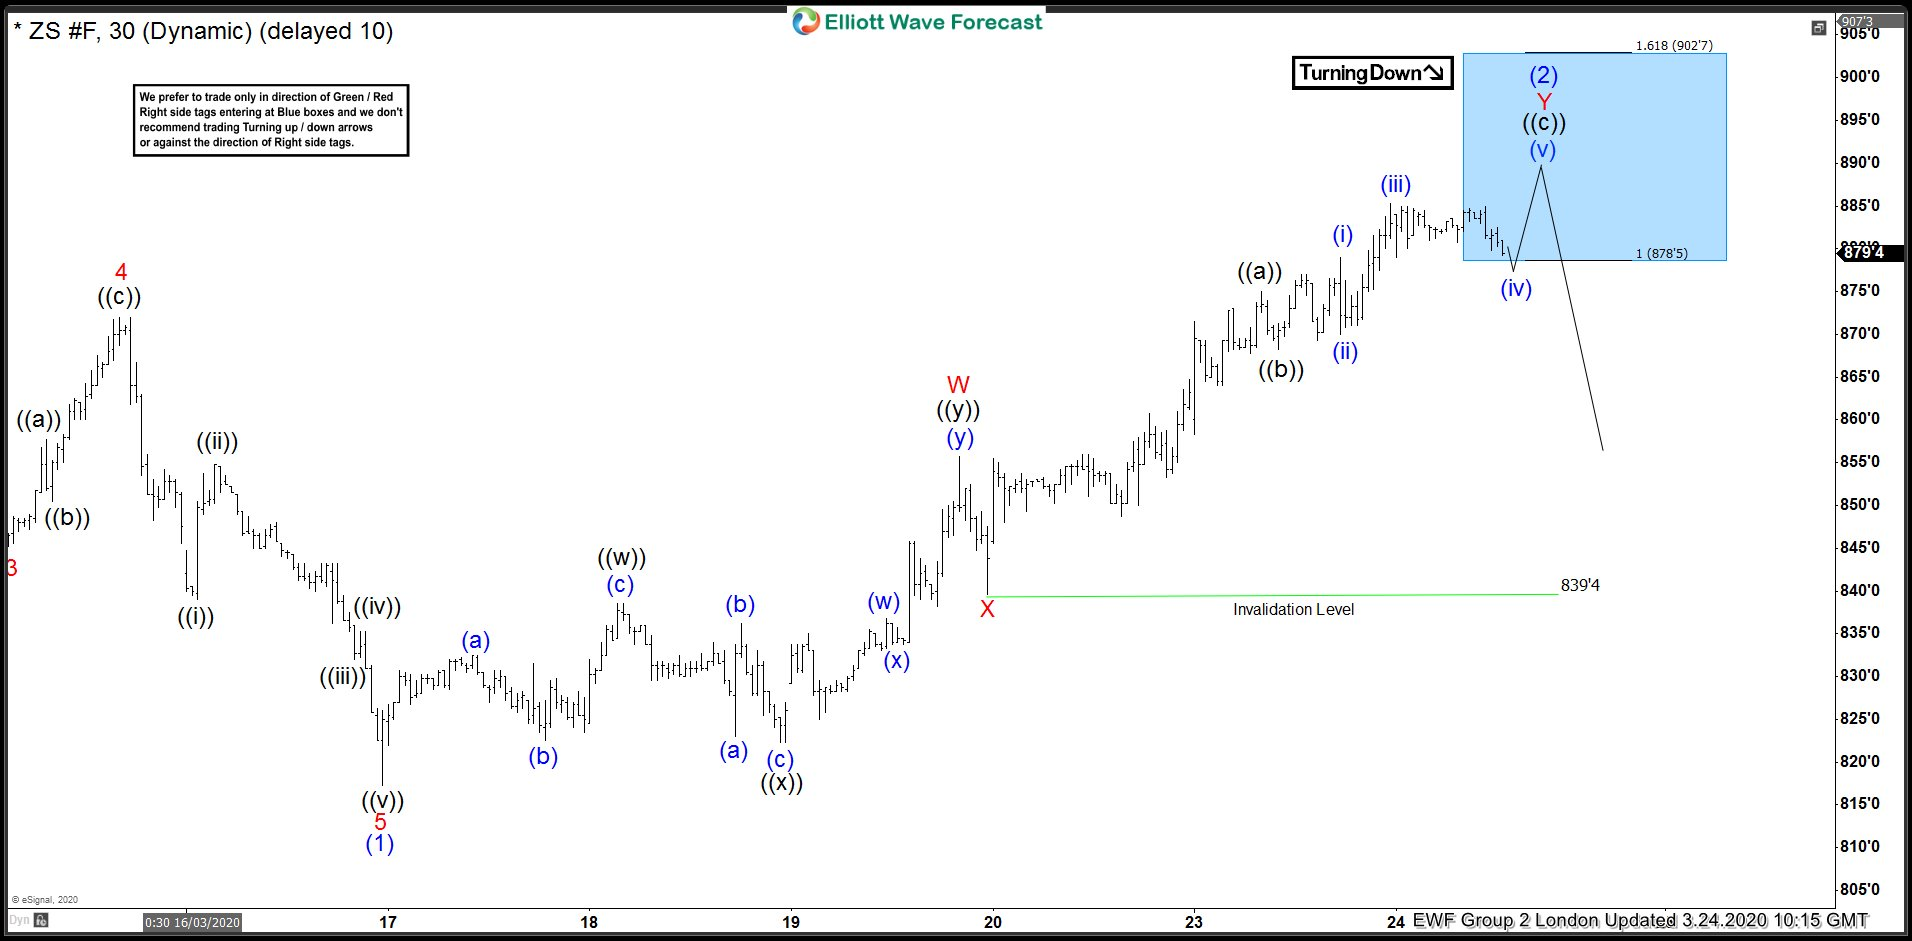 Soybean Elliott Wave View: Reacting Lower From Blue Box Area